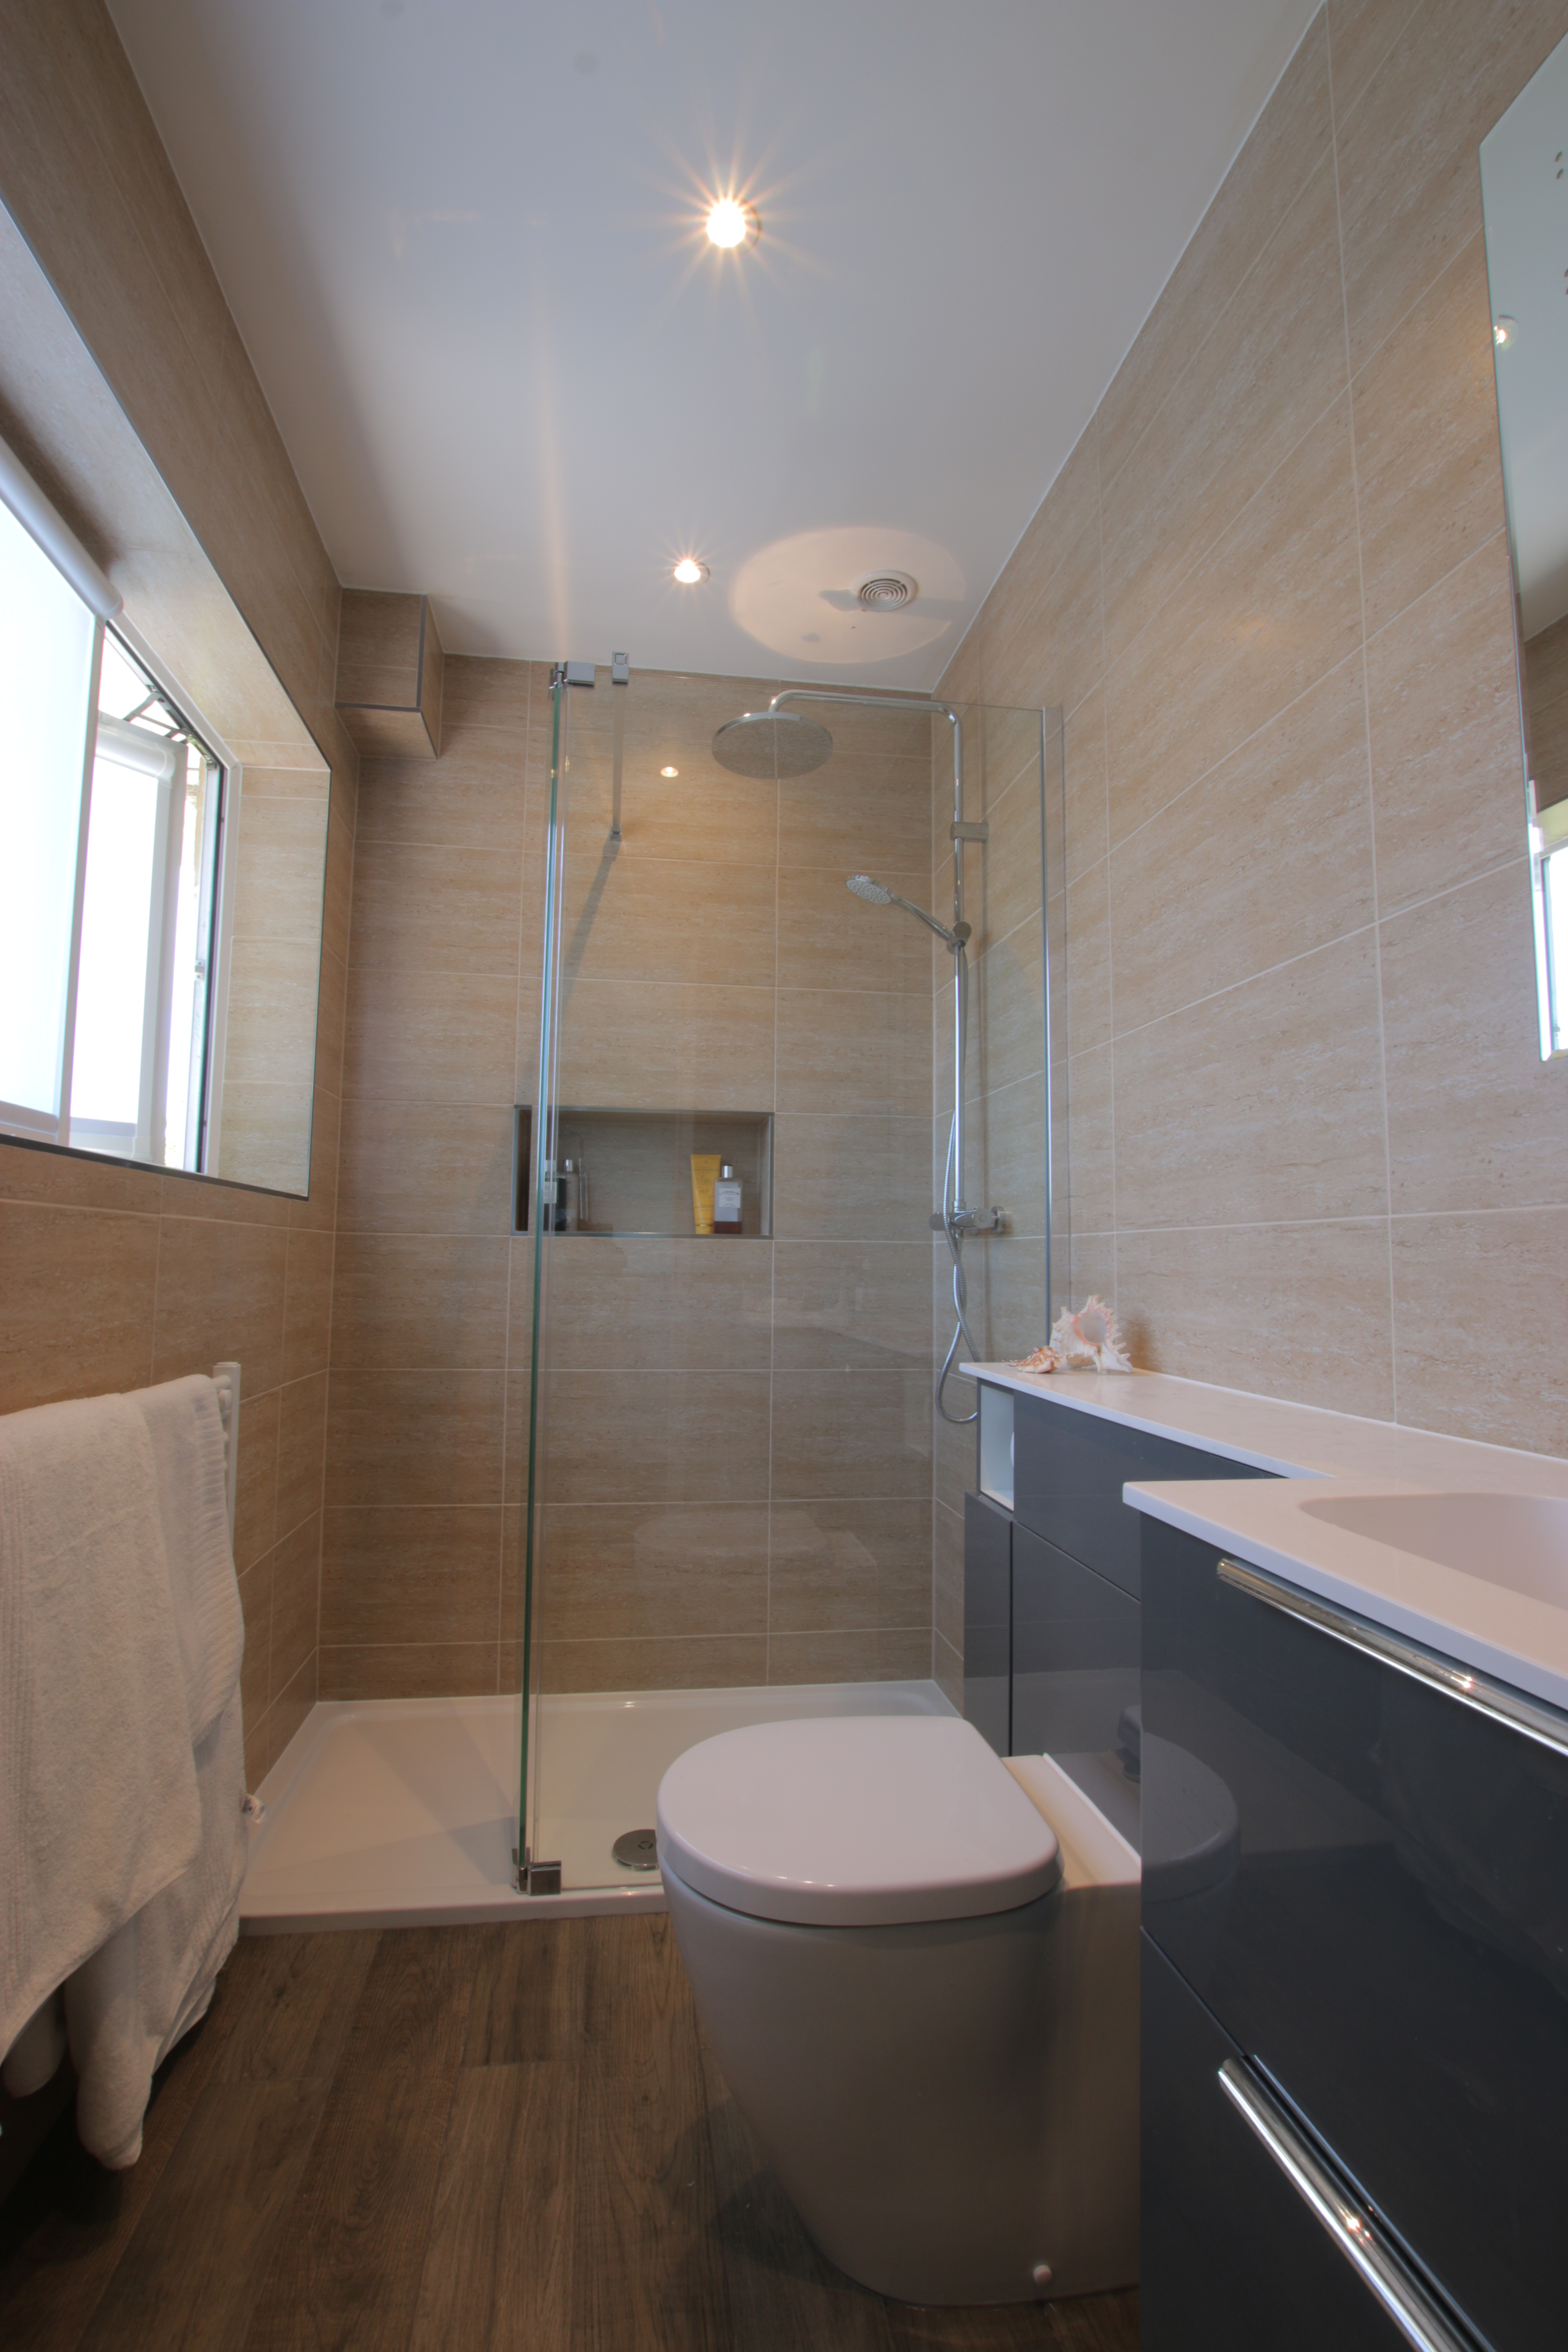 A Luxury Shower Room For Every Day Us